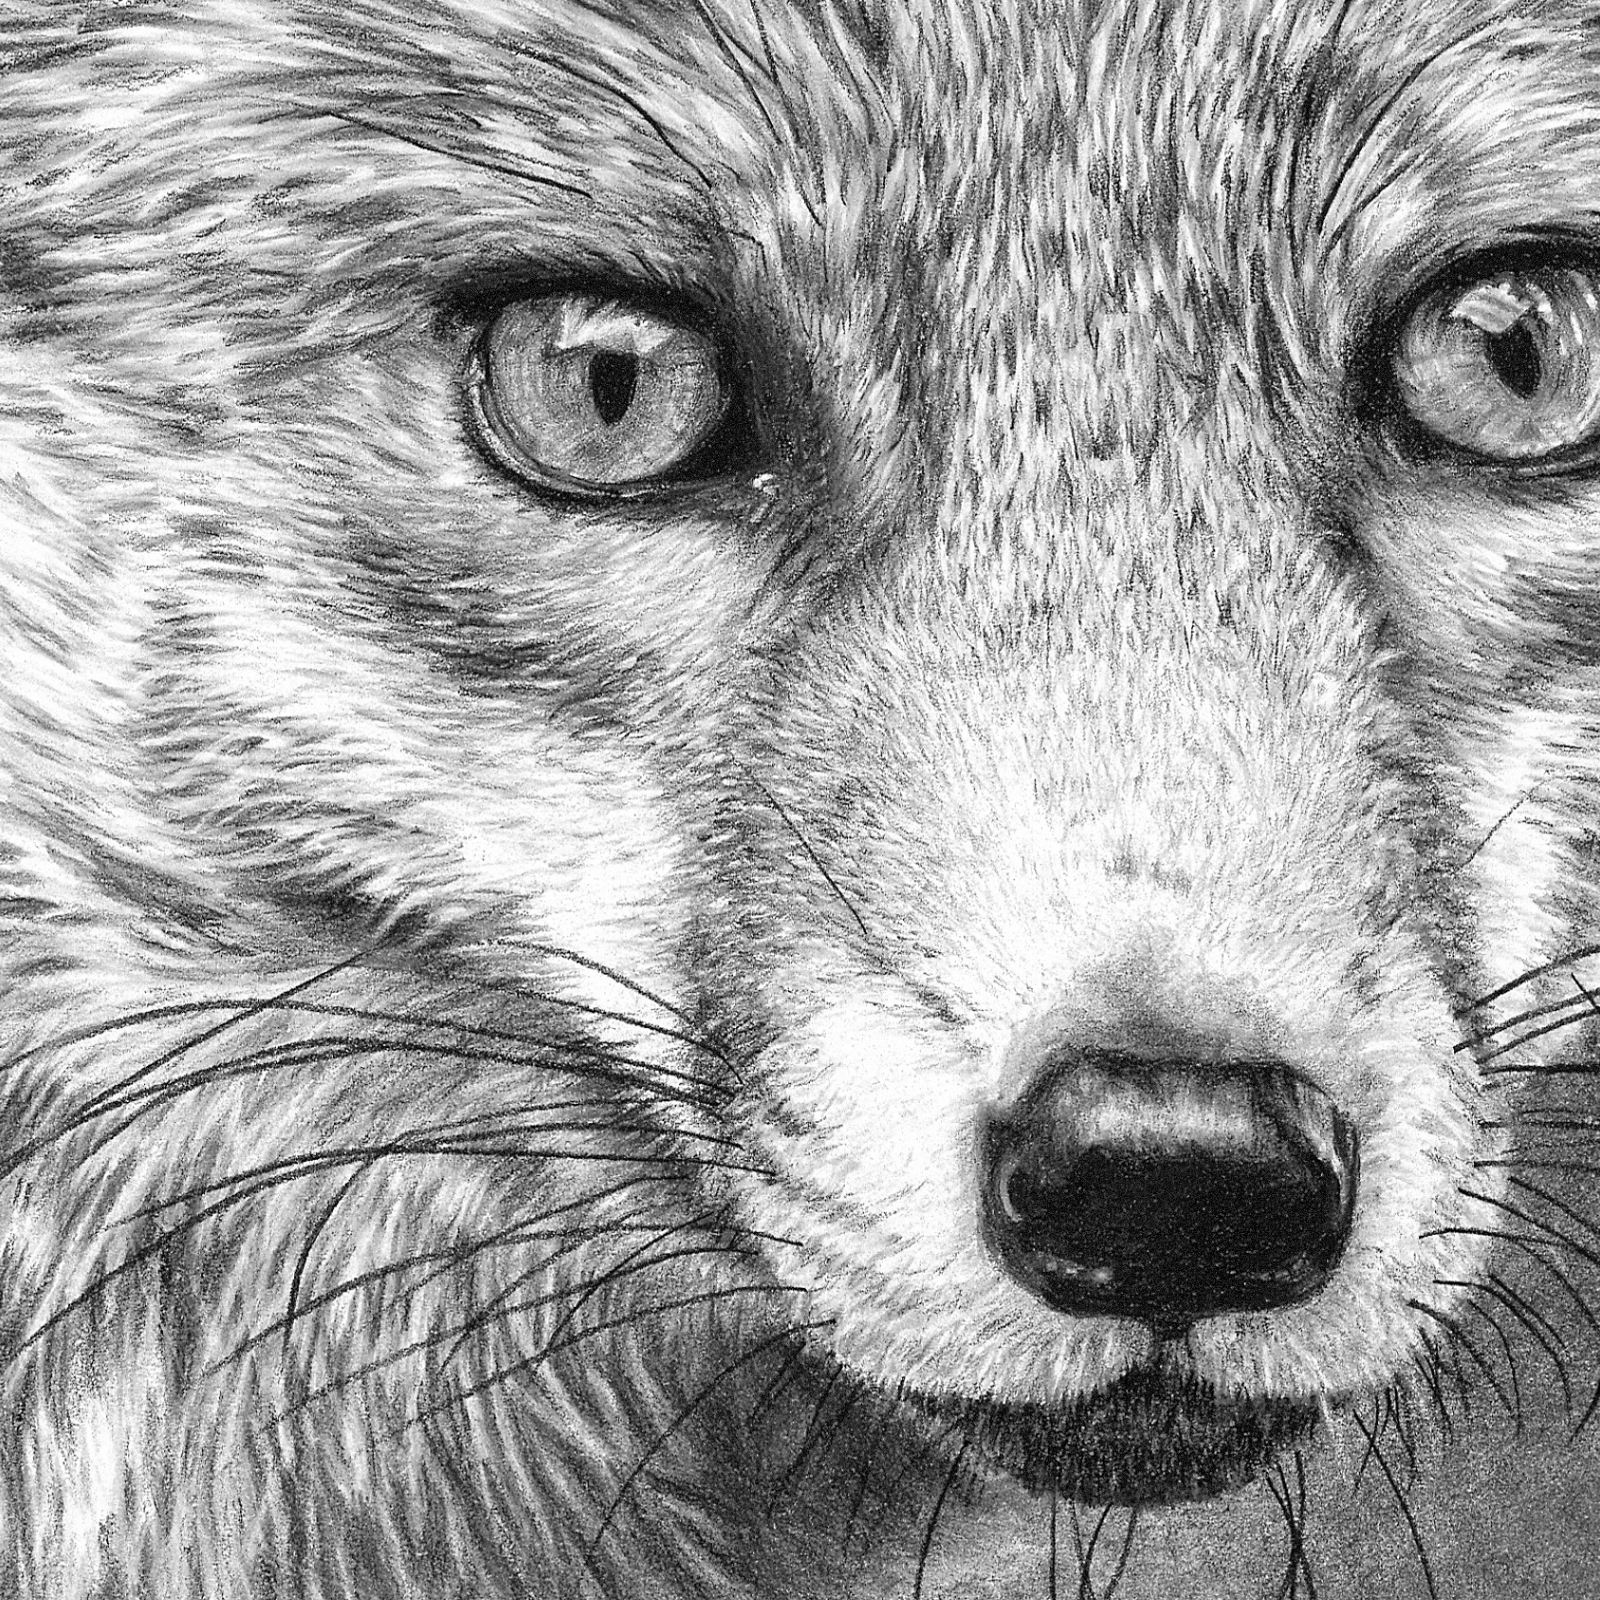 how to draw a realistic fox httpswwwtumblrcomdashboard fox drawing sketches how a to fox draw realistic